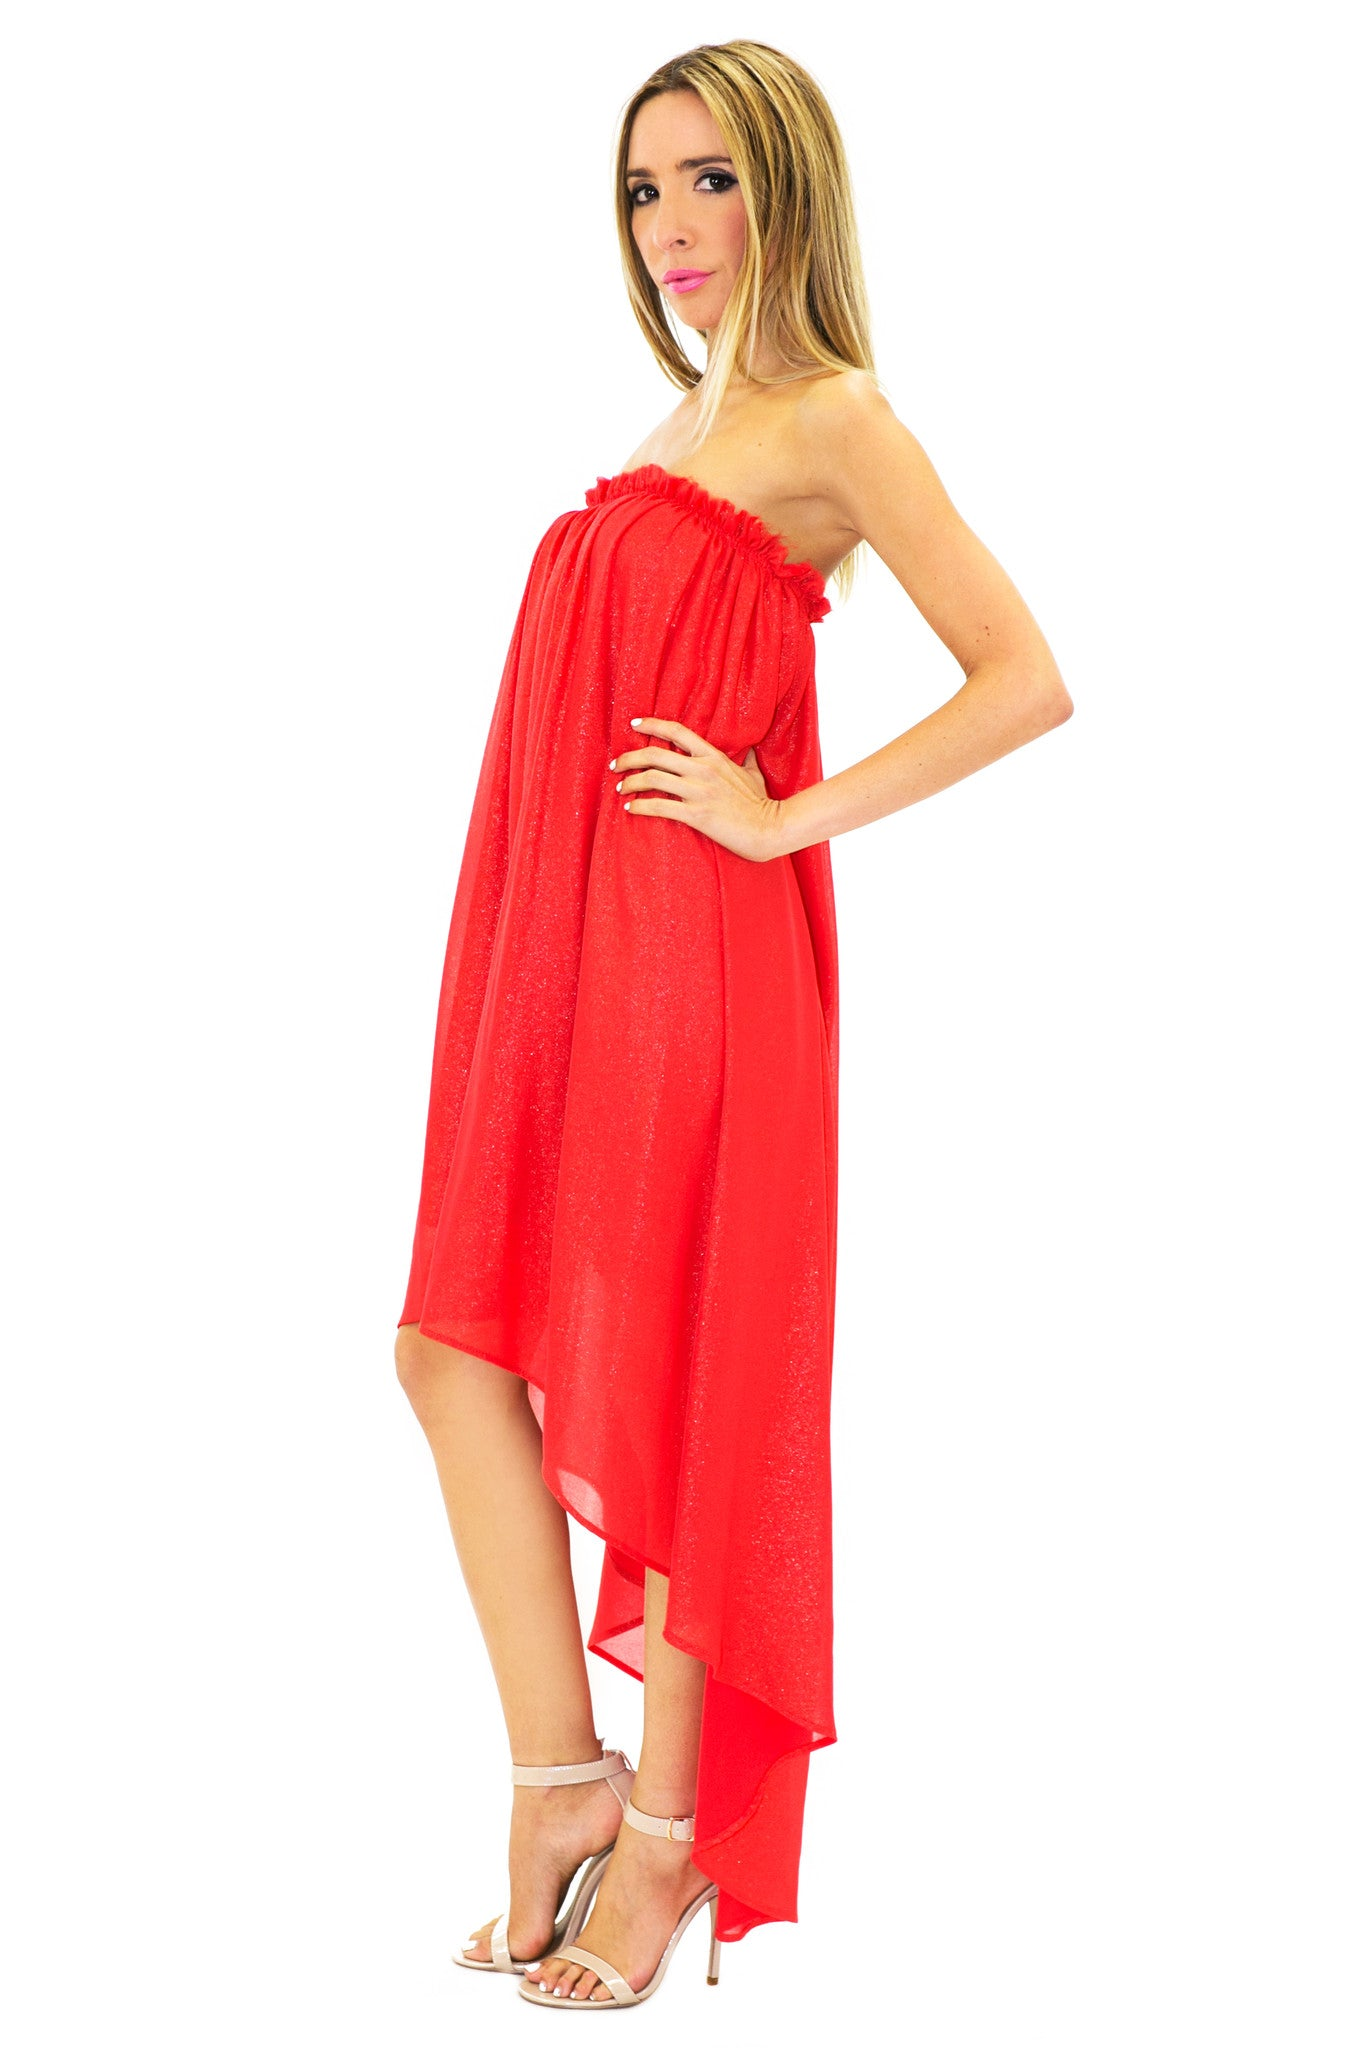 6d9abfb4 Penelope Sparkle High-Low Dress /// Only 1-S Left ///